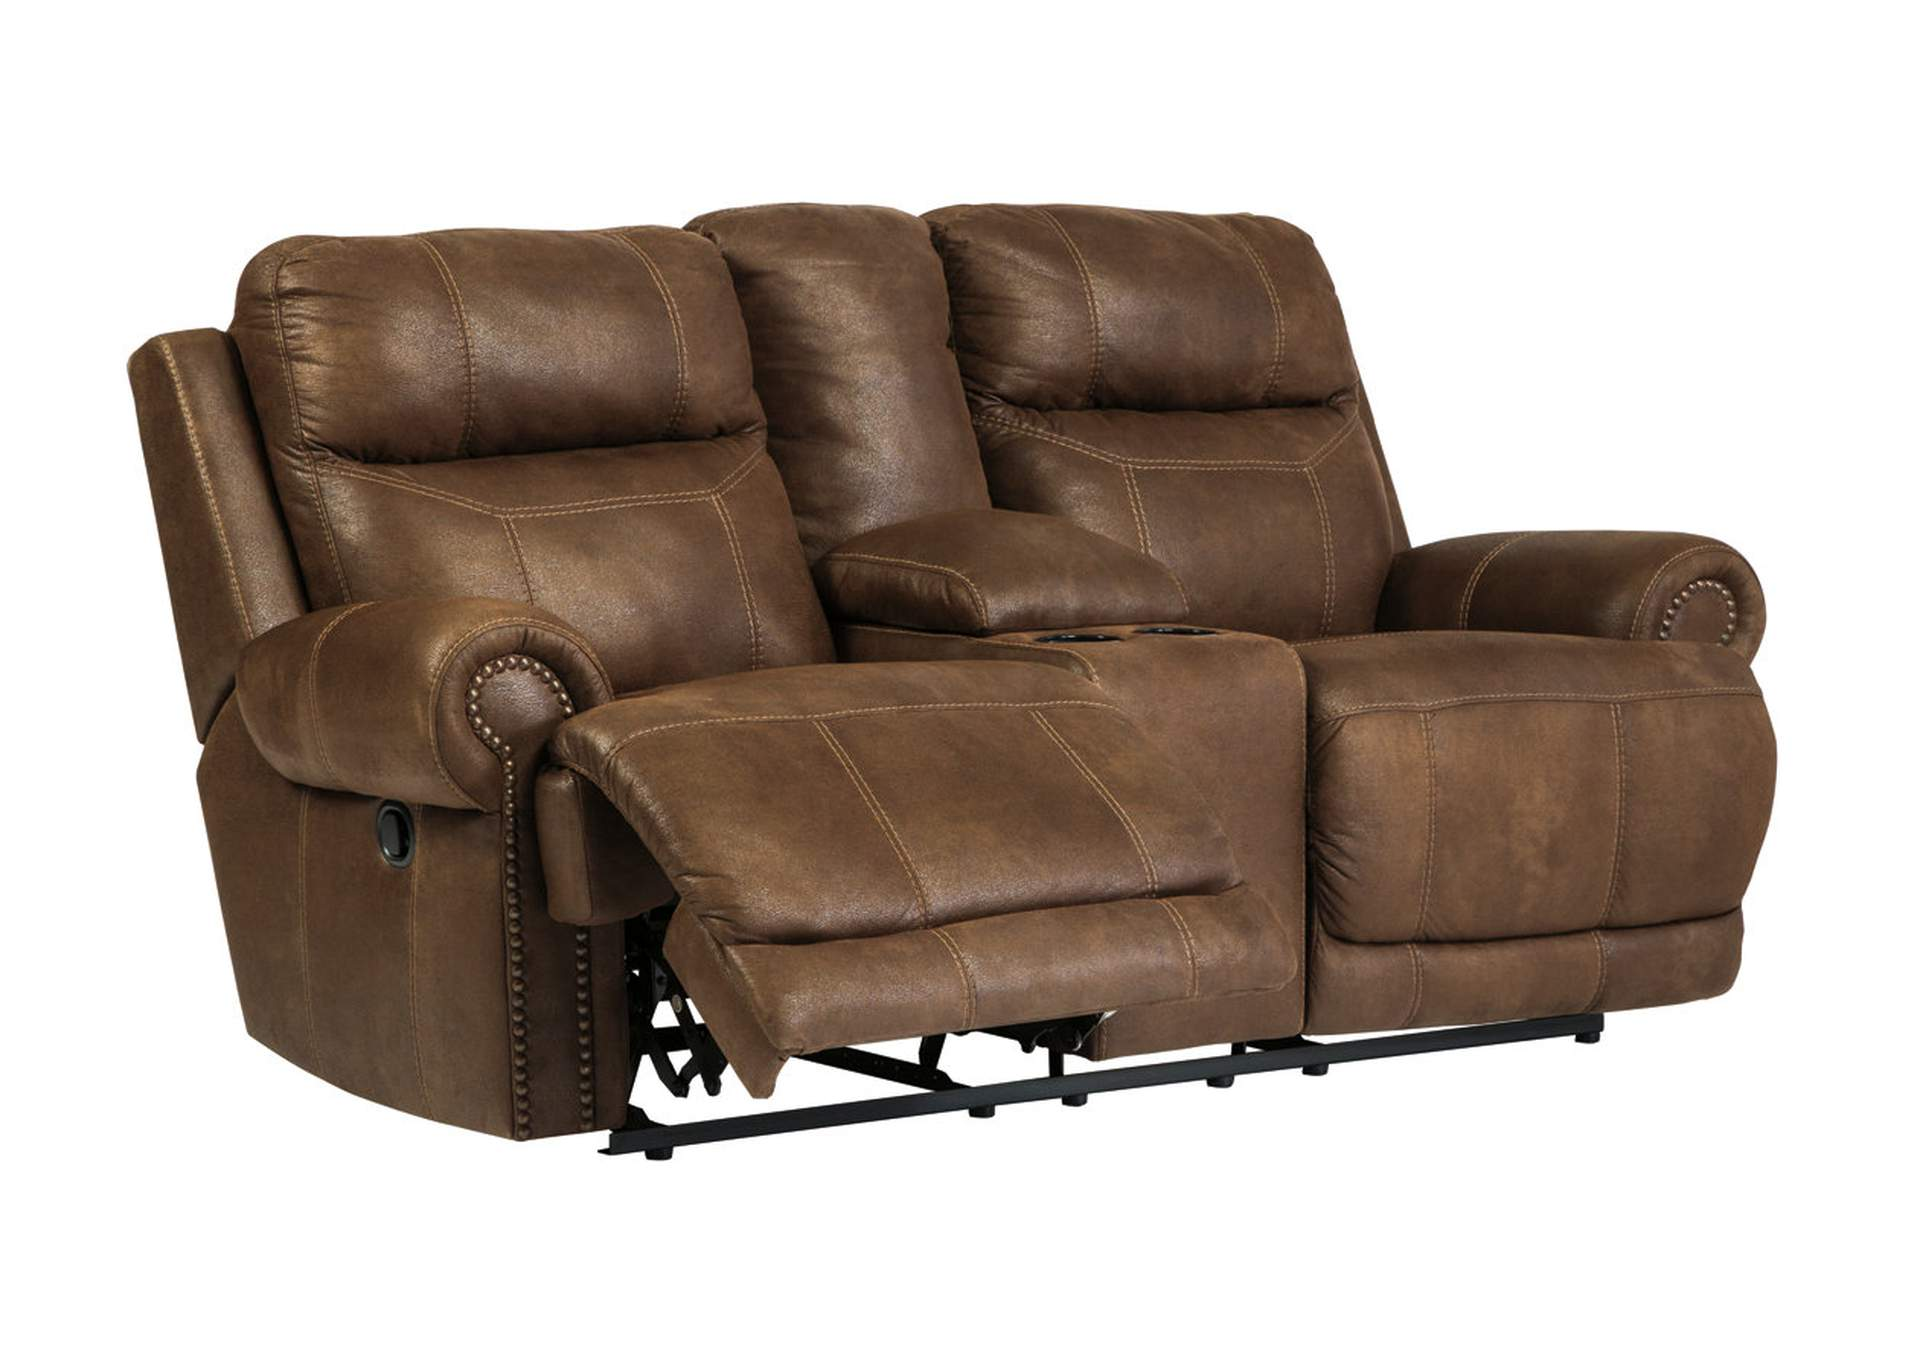 Harlem Furniture Austere Brown Double Reclining Power